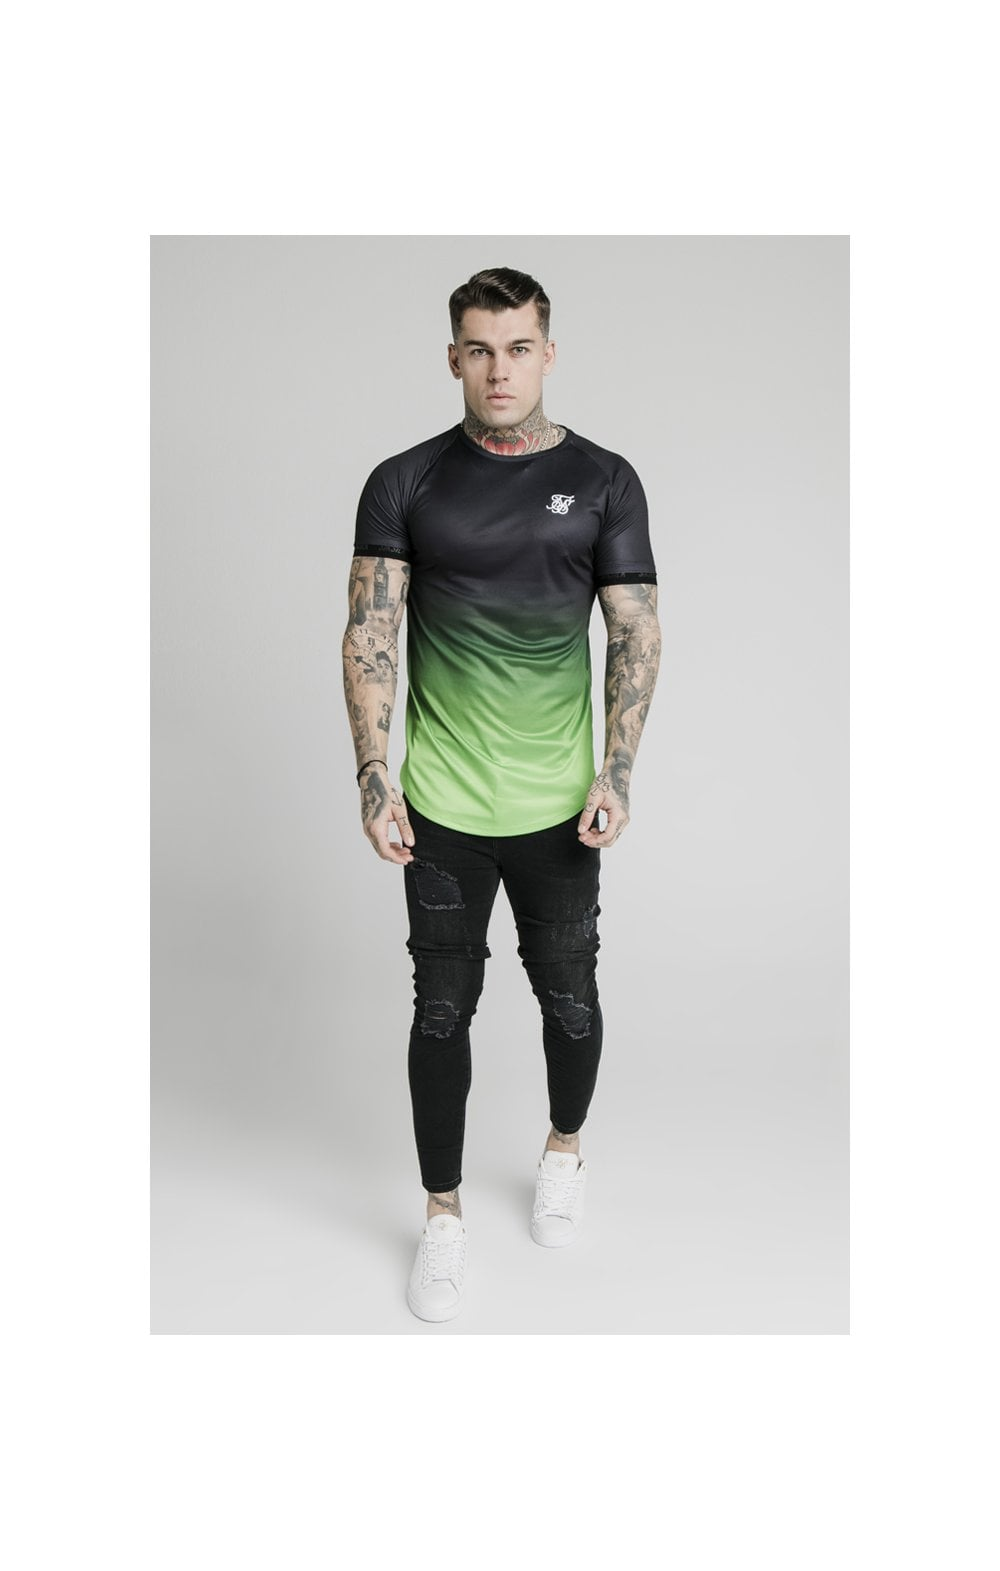 Load image into Gallery viewer, SikSilk S/S Fade Tech Tee - Black & Fluro (2)